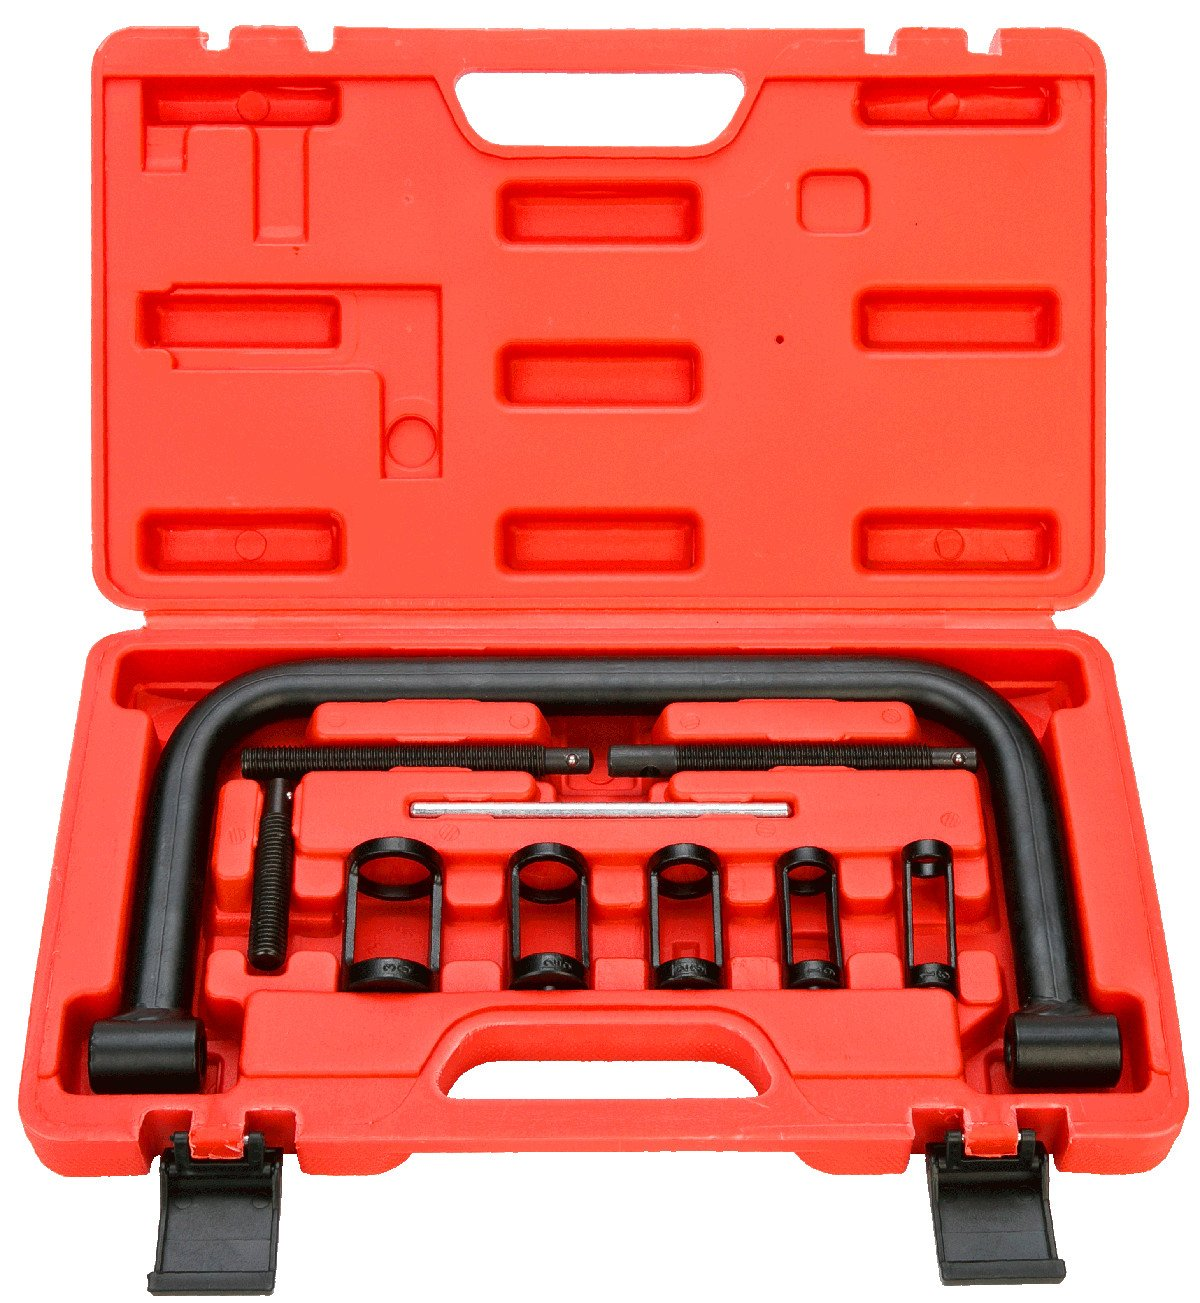 8milelake Valve Spring Compressor Automotive Tool Set Repair Tool freebirdtrading